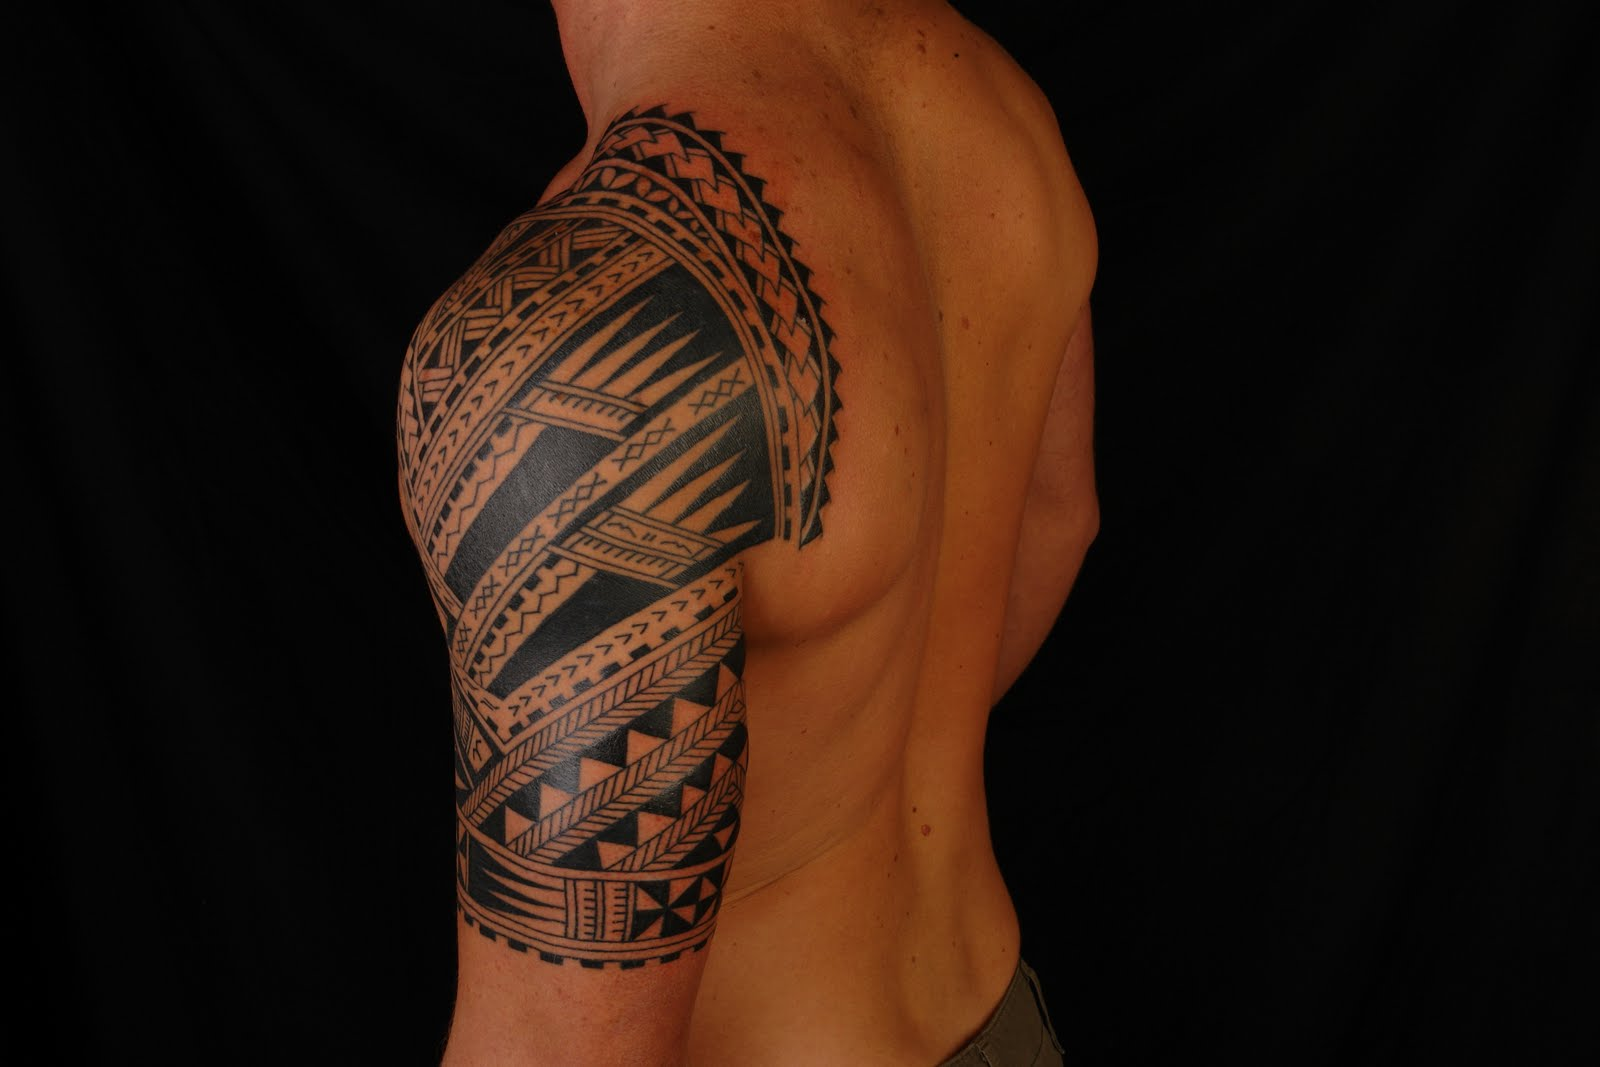 cf6ce5a8a4 SHANE TATTOOS: Polynesian Half Sleeve on Codie